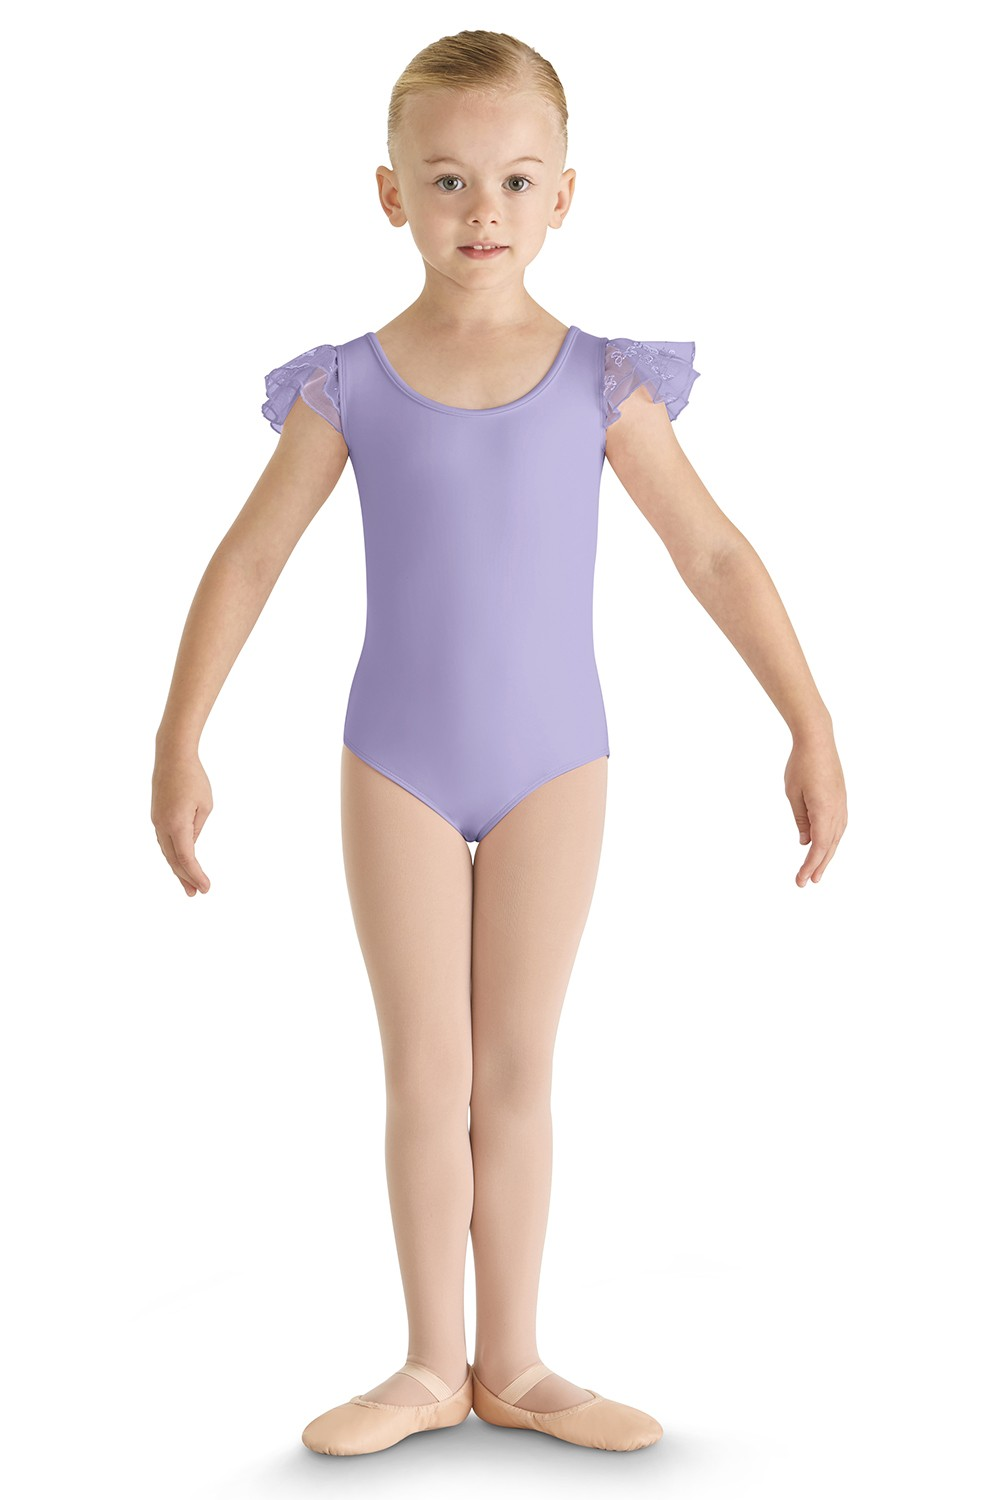 Enki Children's Dance Leotards